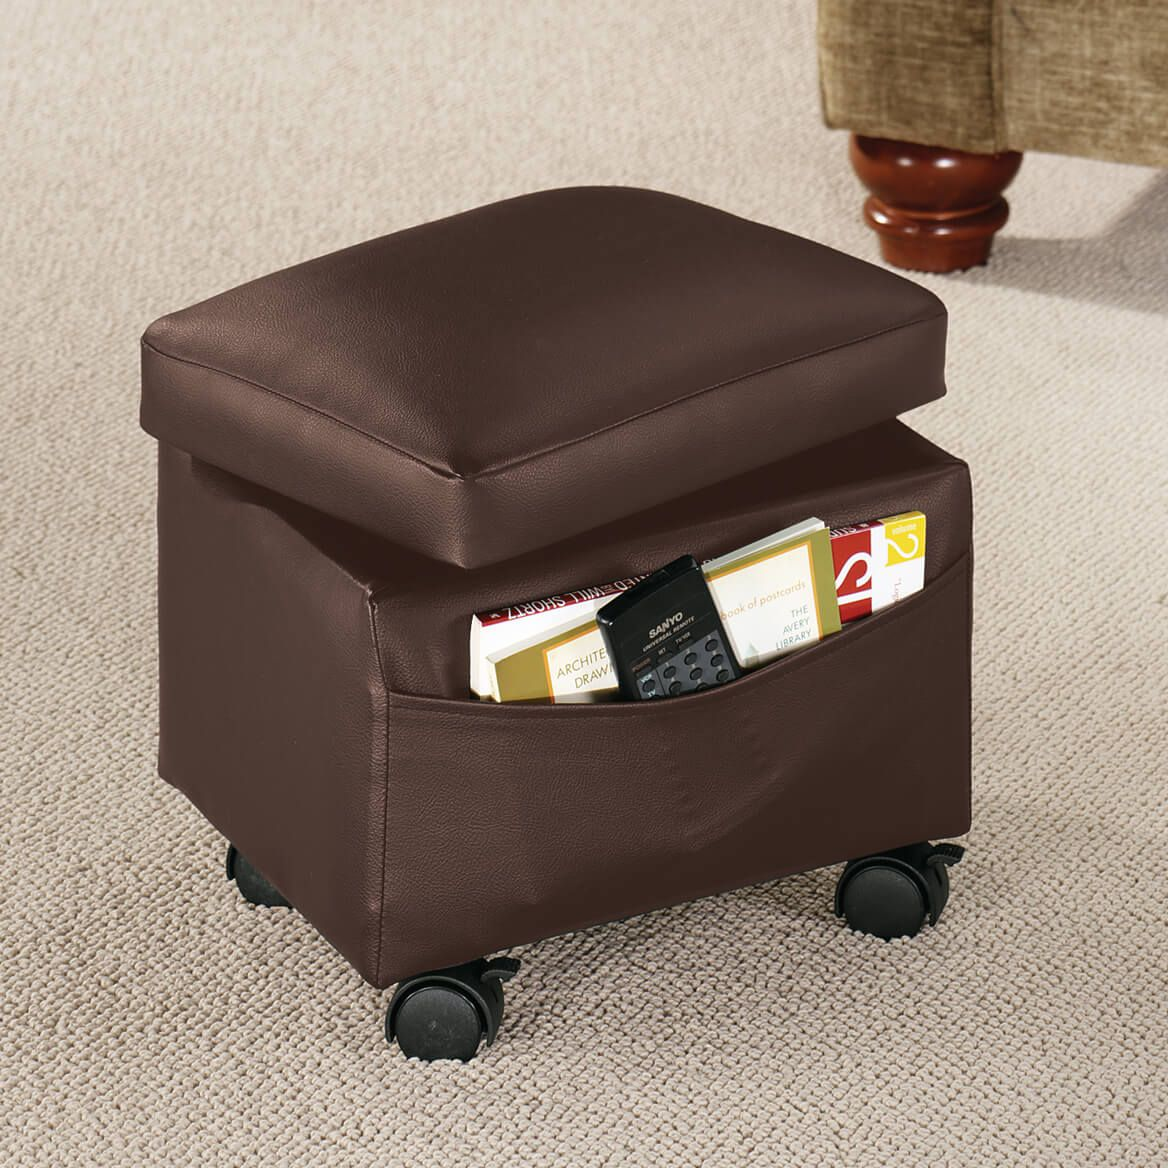 Sensational Flip Top Small Storage Ottoman By Oakridge Accents Andrewgaddart Wooden Chair Designs For Living Room Andrewgaddartcom